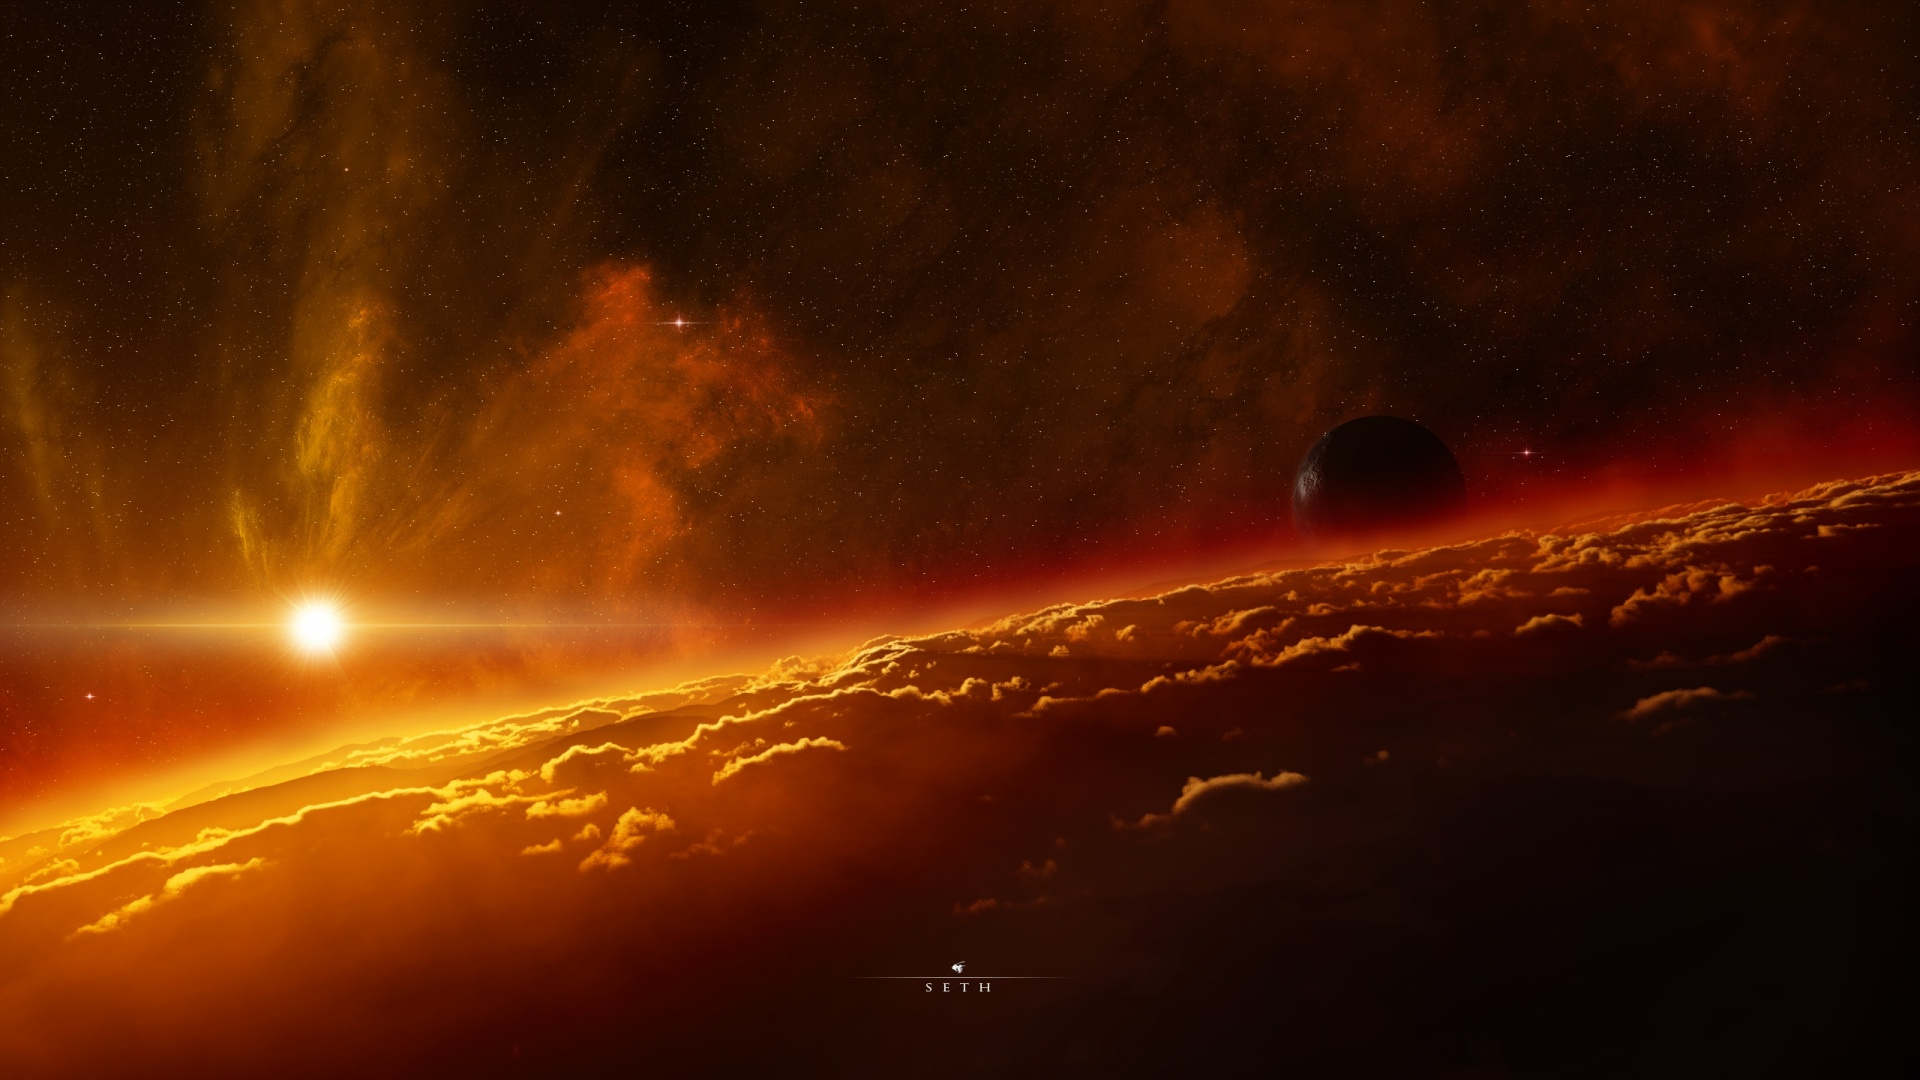 Outer space planets digital art artwork high definition for Outer space planets